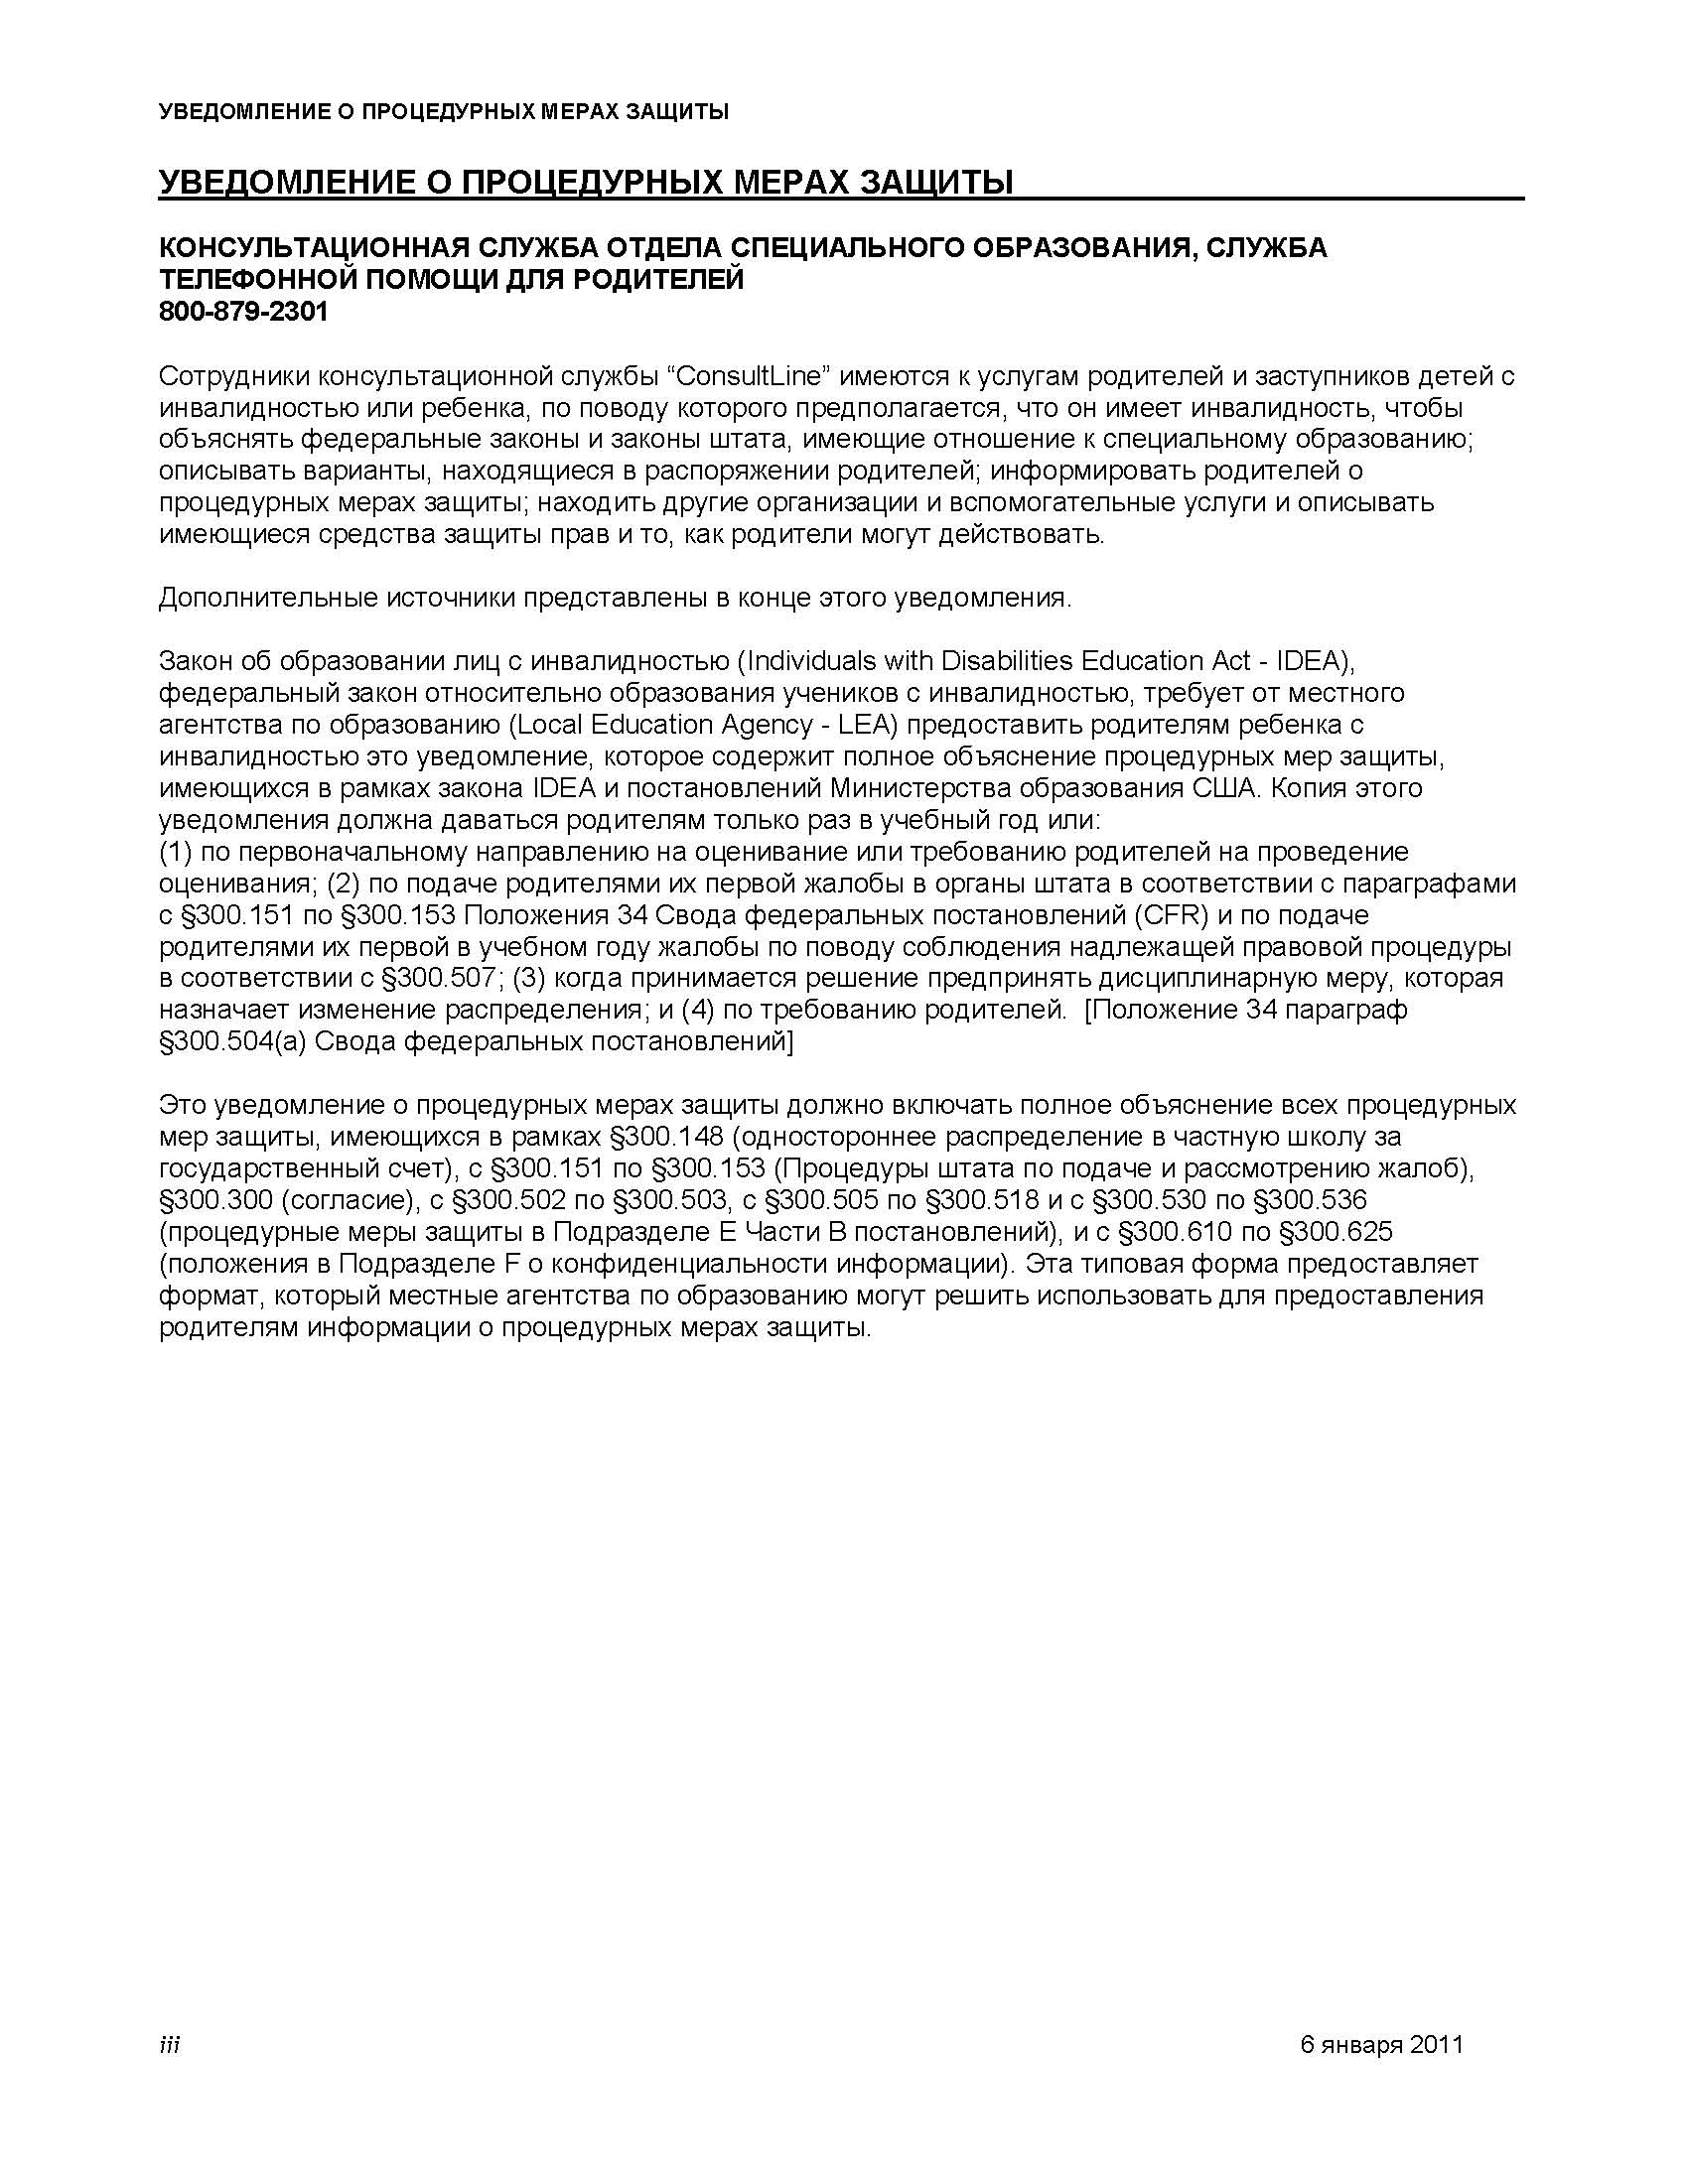 PROCEDURAL SAFEGUARDS NOTICE - School Age - Russian